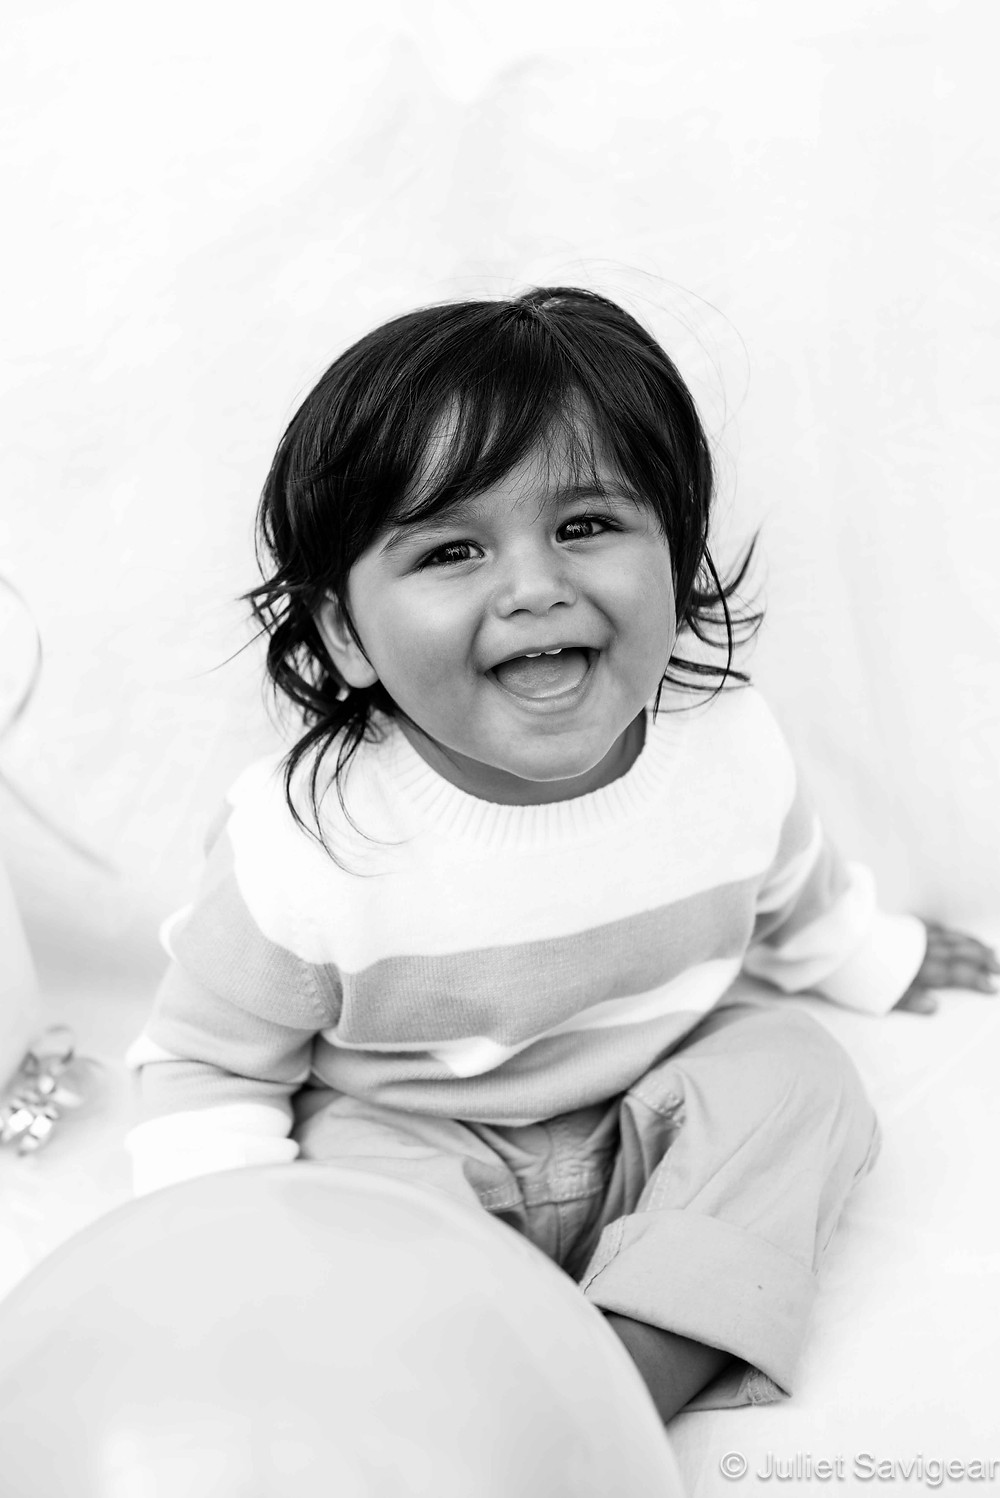 Birthday Boy - Children's Photography, North Harrow